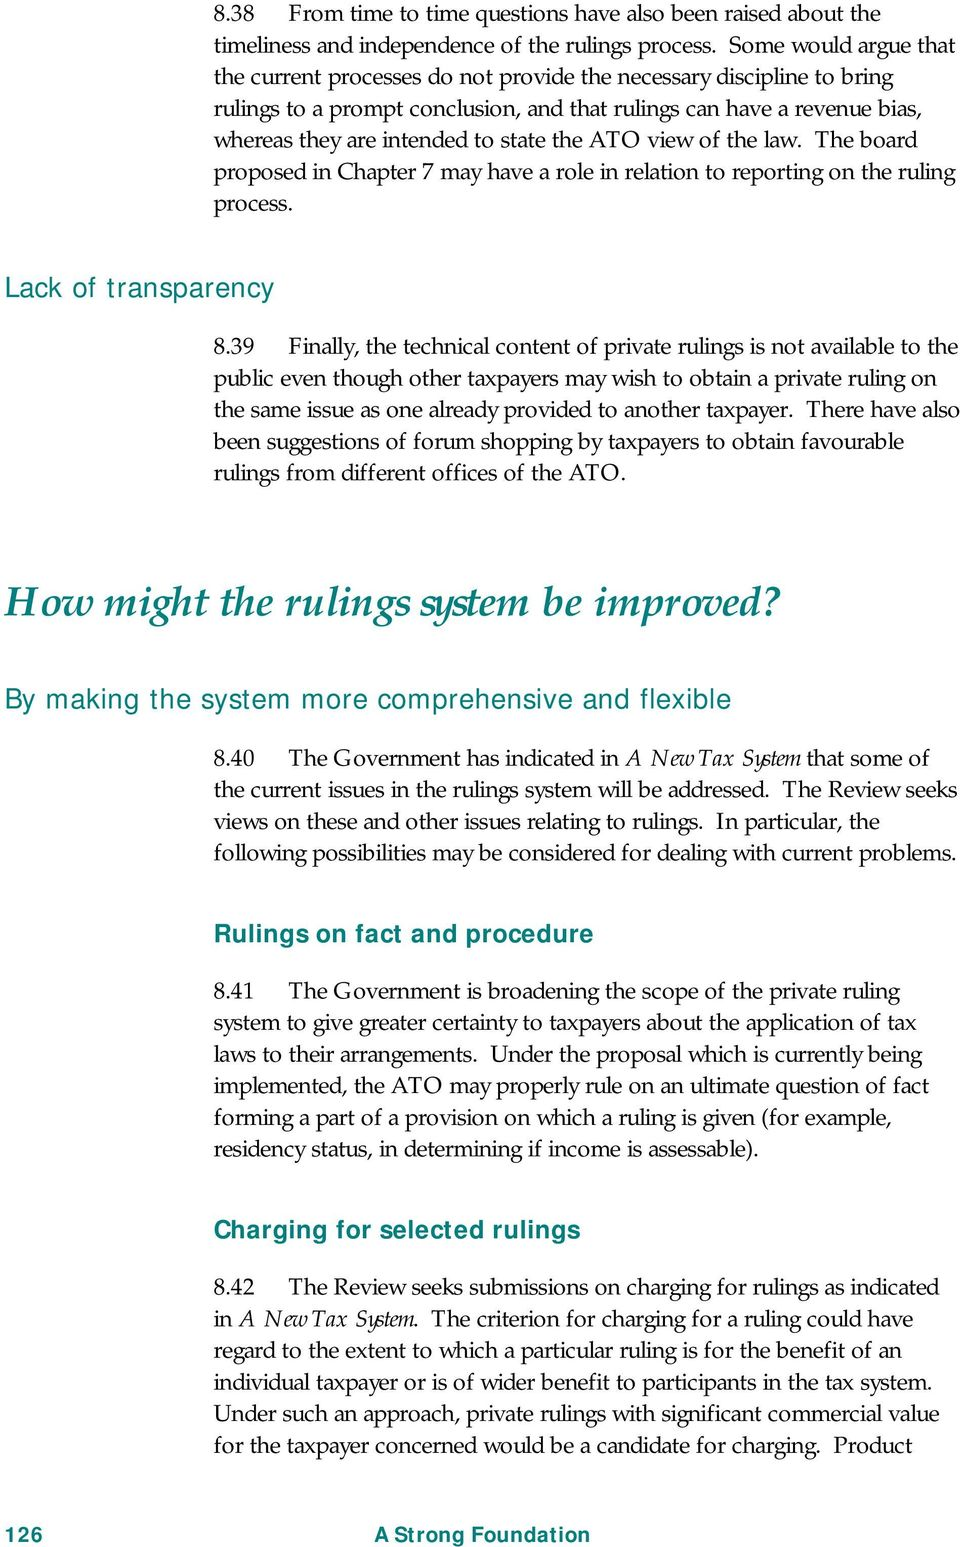 state the ATO view of the law. The board proposed in Chapter 7 may have a role in relation to reporting on the ruling process. Lack of transparency 8.